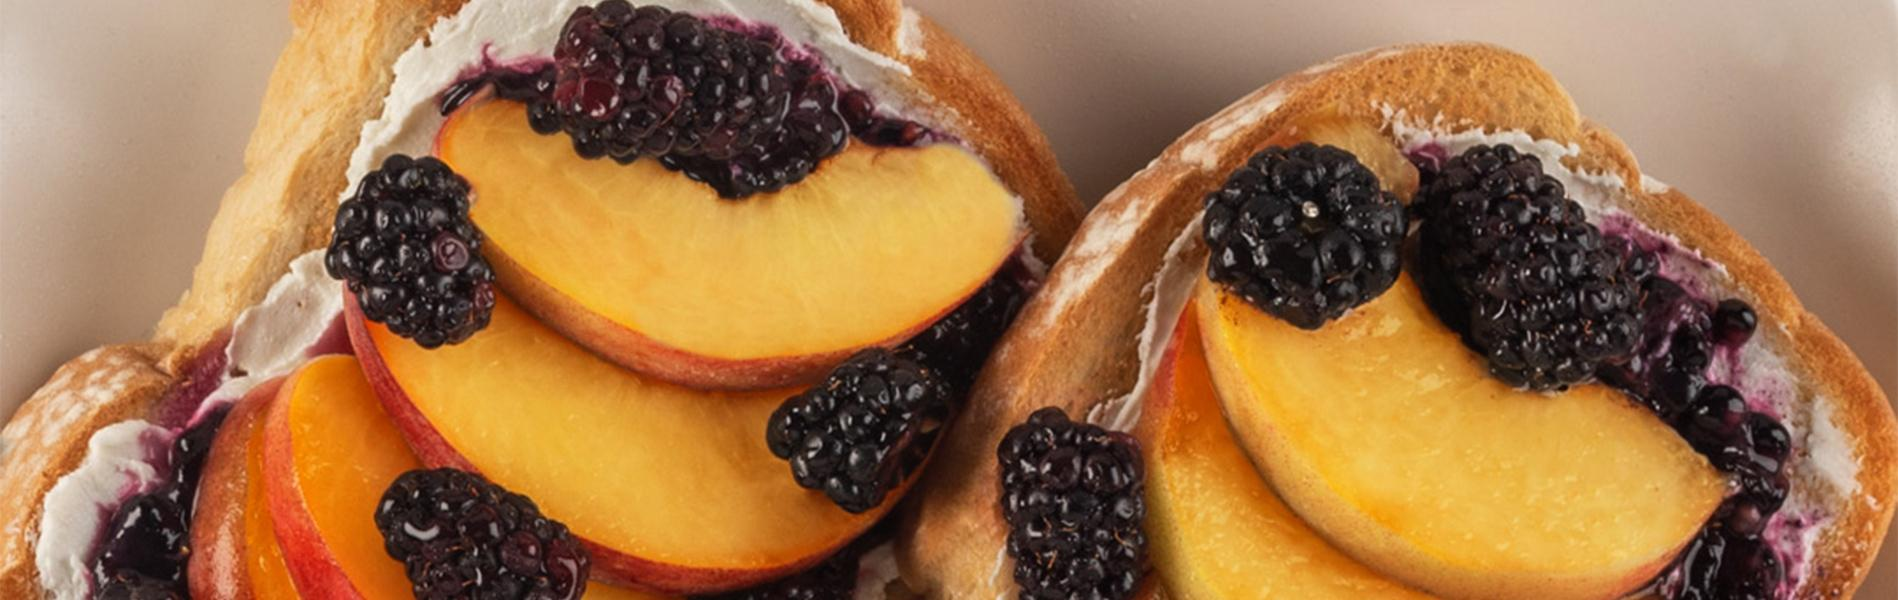 Toasted Sara Lee Artesano Bread with Goat cheese, fresh peaches and blackberries